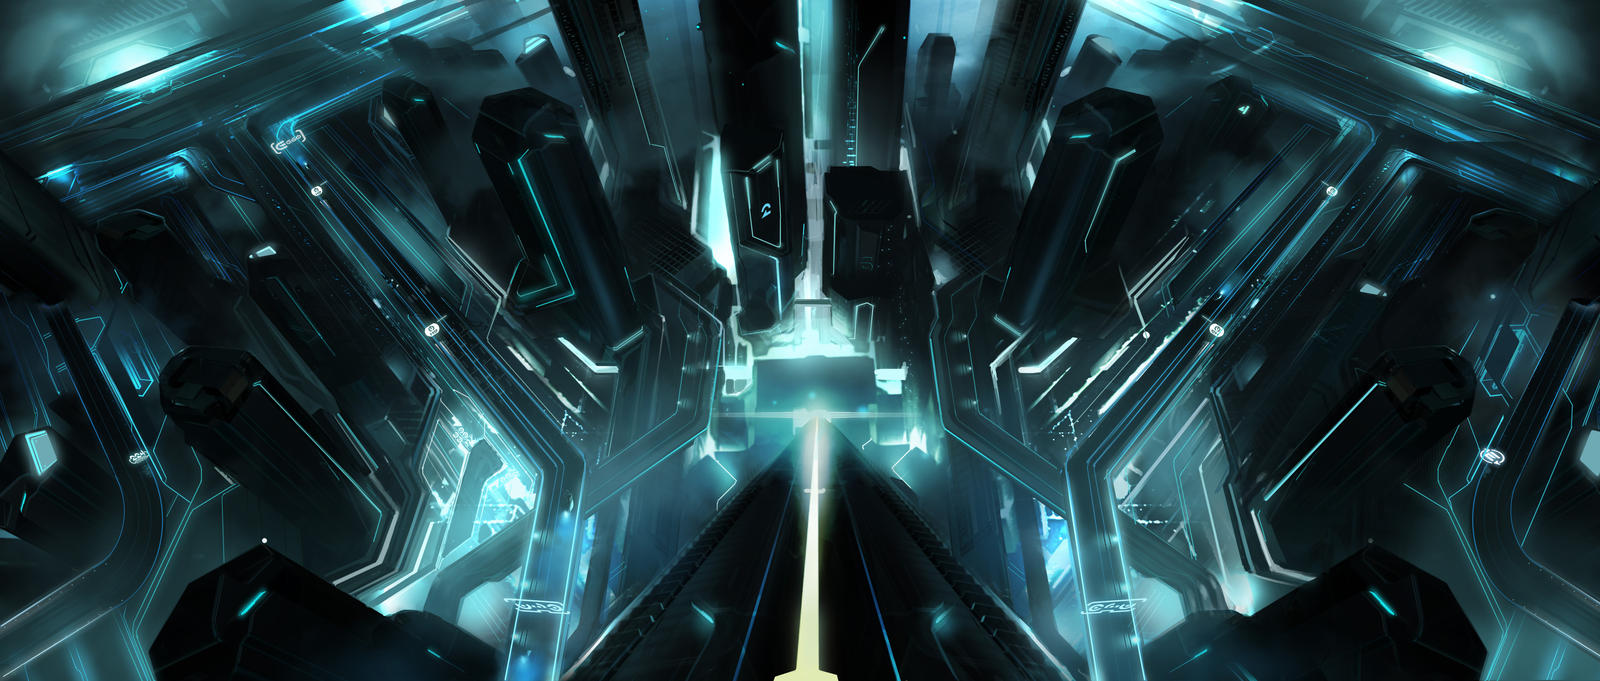 Tron Legacy Under the tower